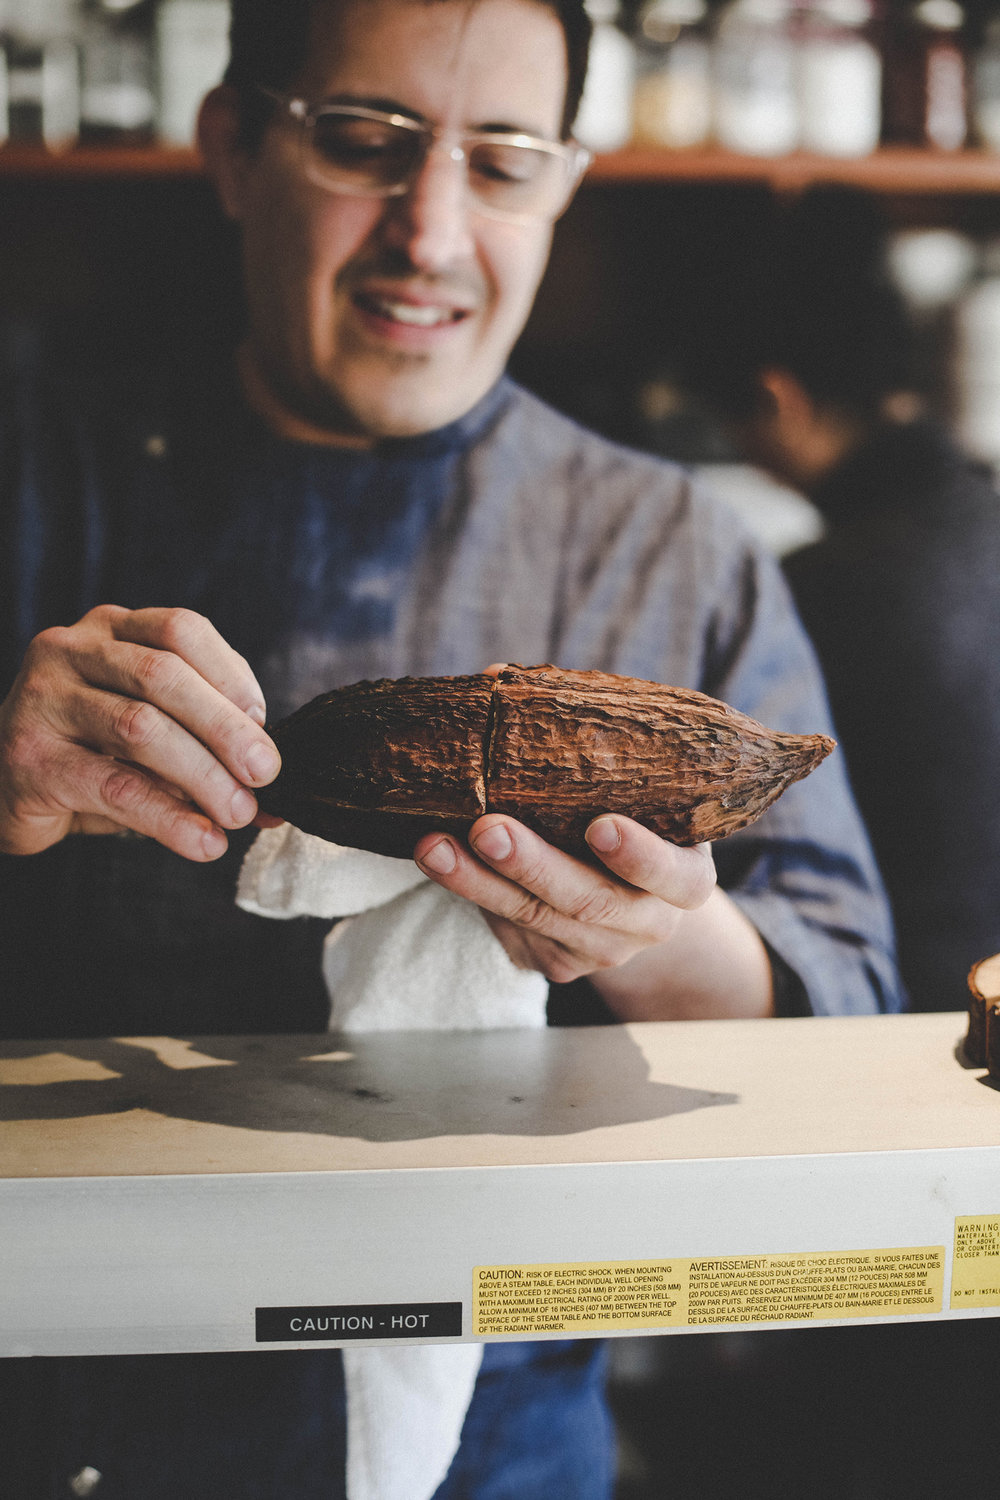 The cacao beans from inside have been used in his dishes.